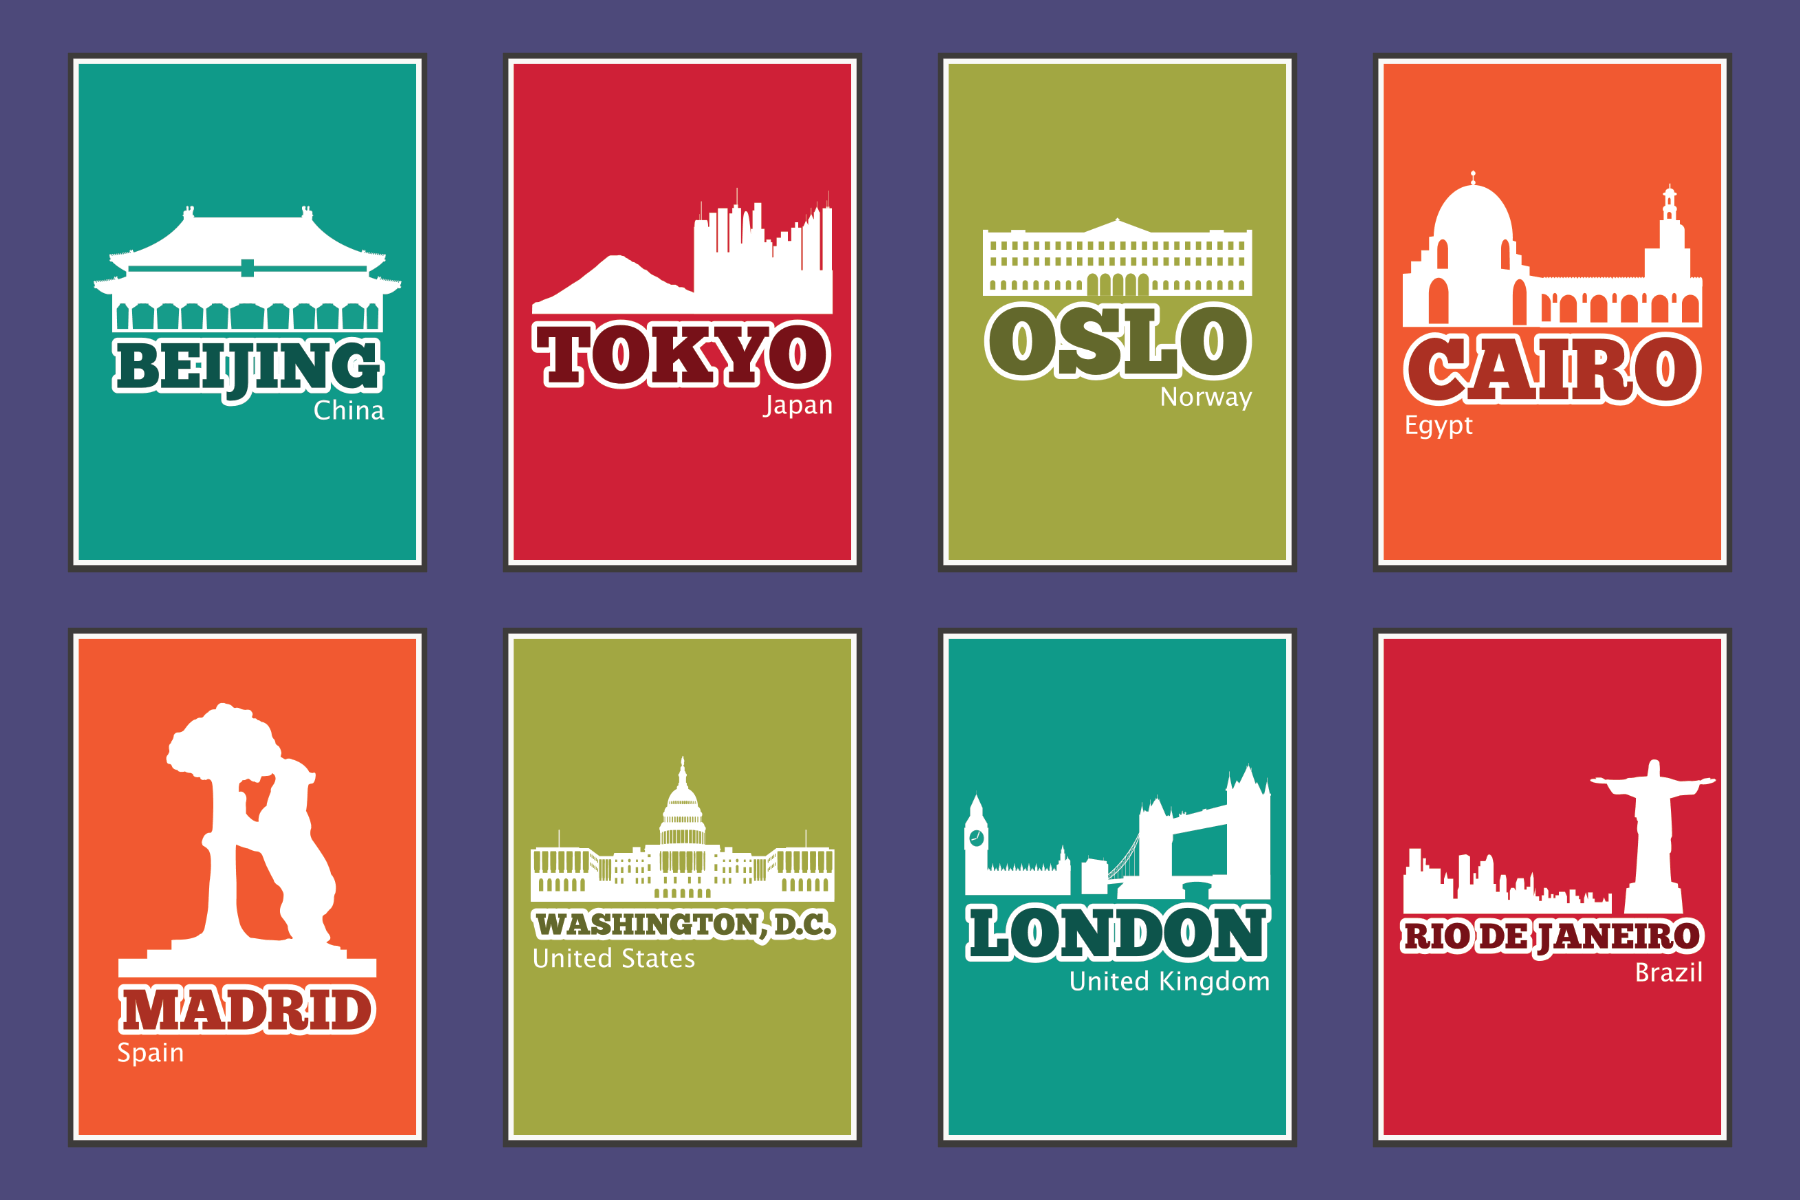 reference cards for famous cities around the world